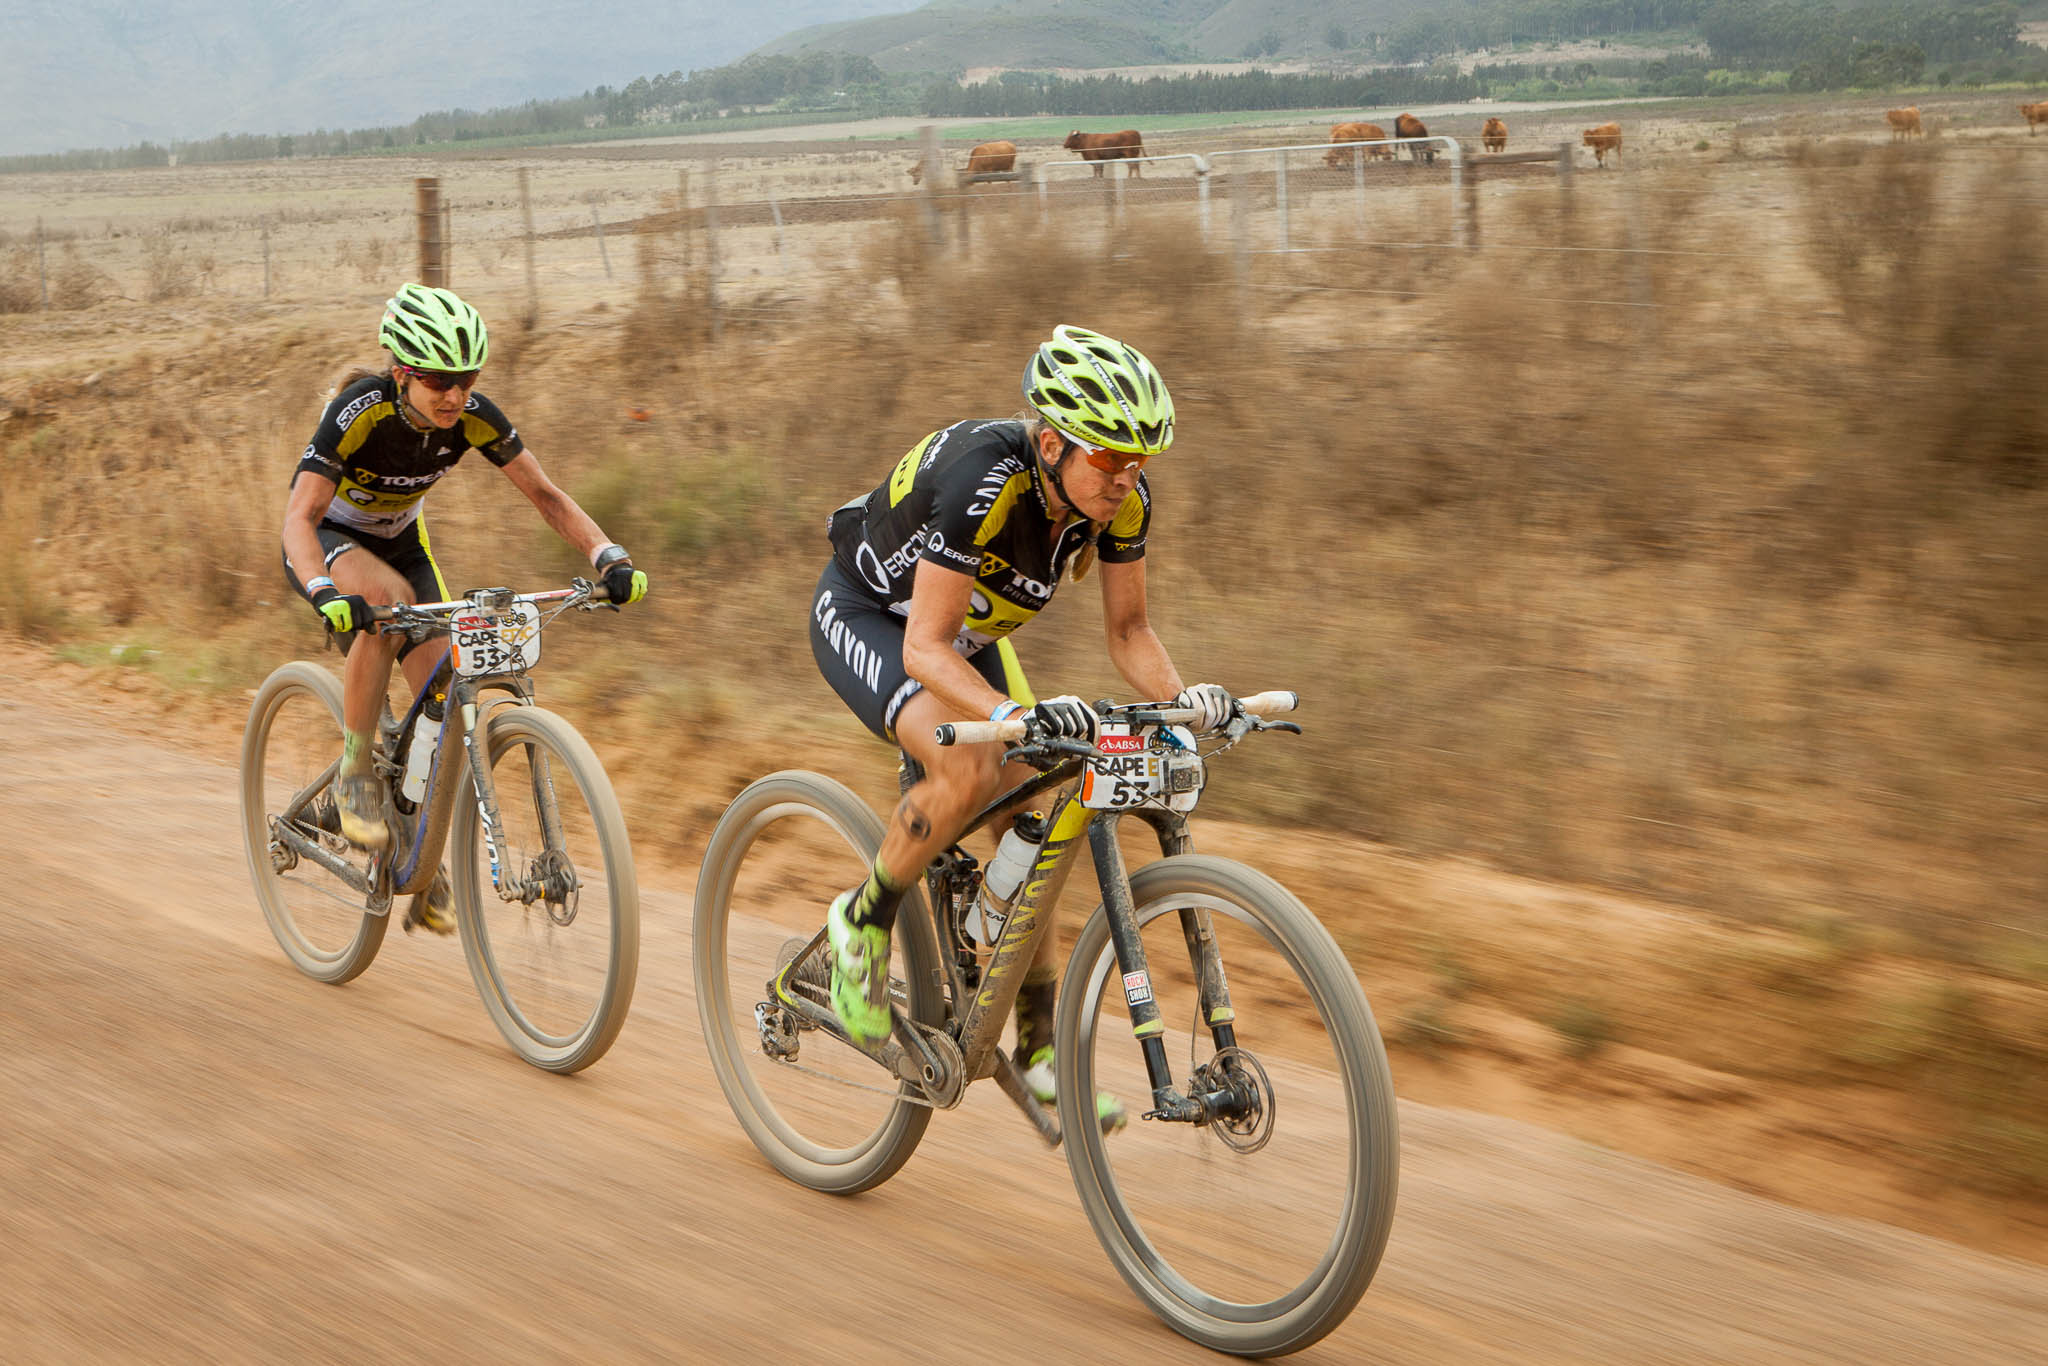 Sally Bigham (R) Adel Morath (L) during stage 4 of the 2016 Absa Cape Epic Mountain Bike stage race from the Cape Peninsula University of Technology in Wellington, South Africa on the 17th March 2016 Photo by Sam Clark/Cape Epic/SPORTZPICS PLEASE ENSURE THE APPROPRIATE CREDIT IS GIVEN TO THE PHOTOGRAPHER AND SPORTZPICS ALONG WITH THE ABSA CAPE EPIC ace2016